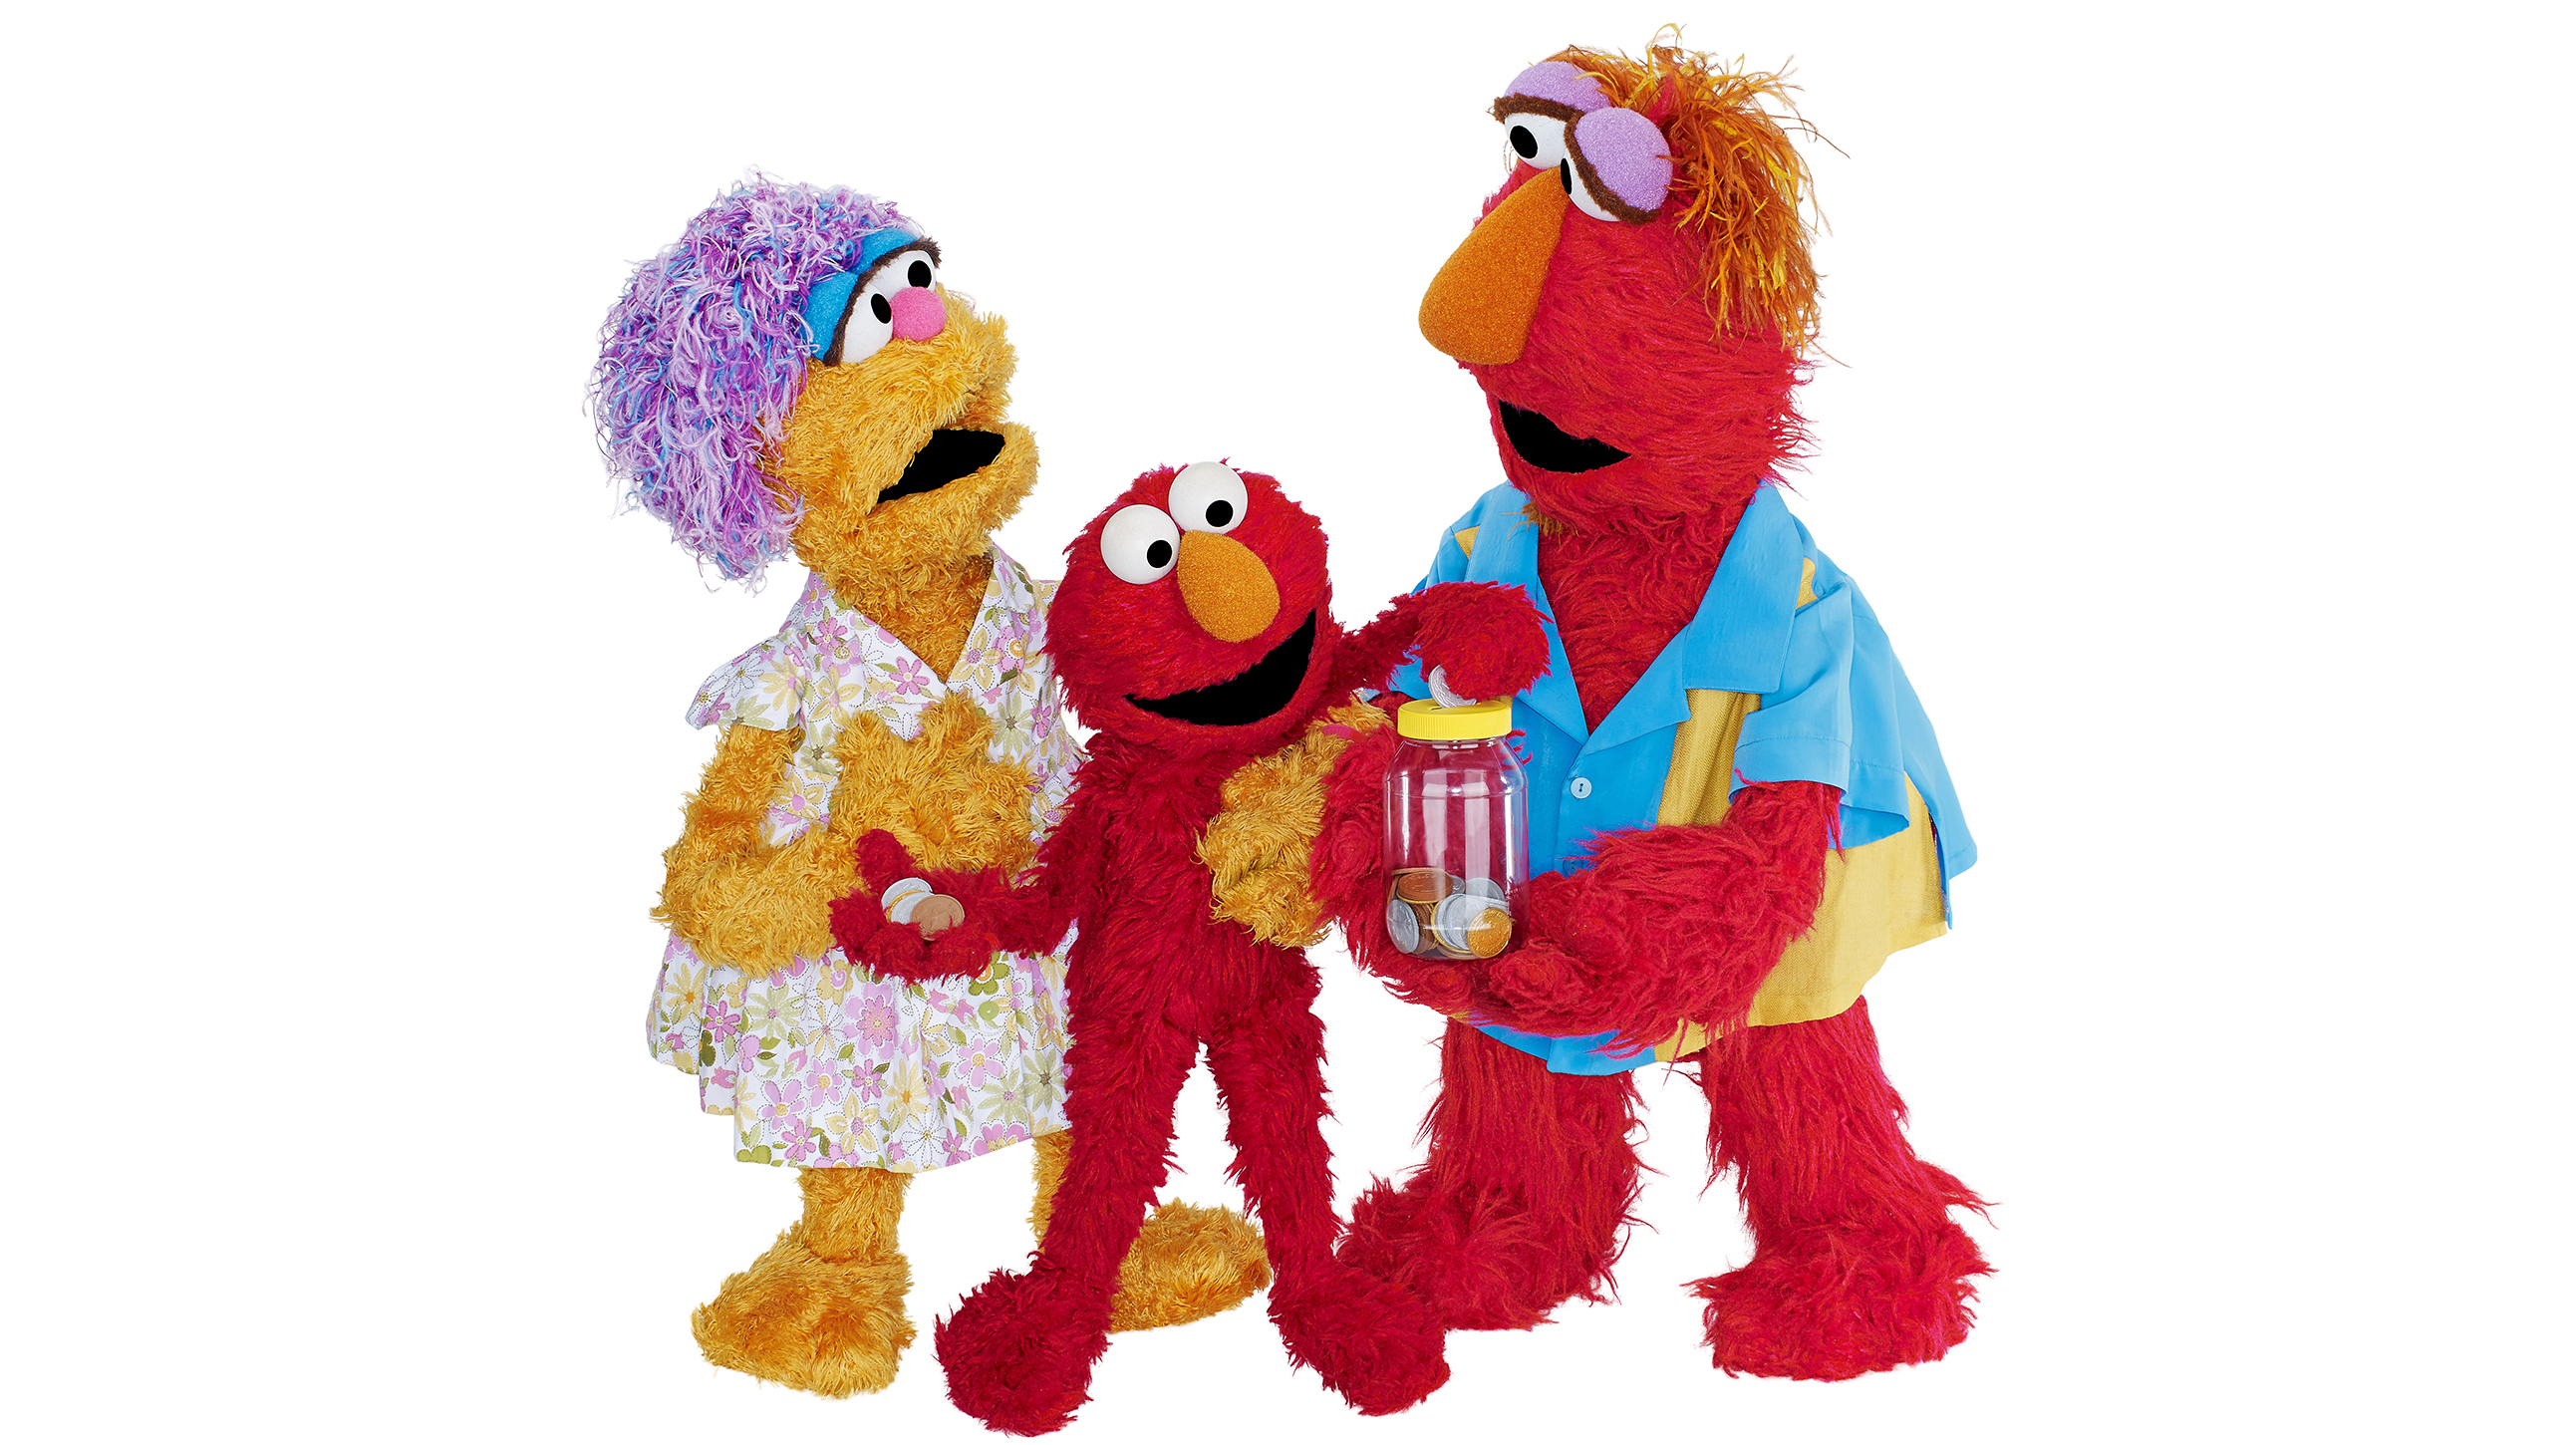 Muppet characters putting change in jar, piggy bank